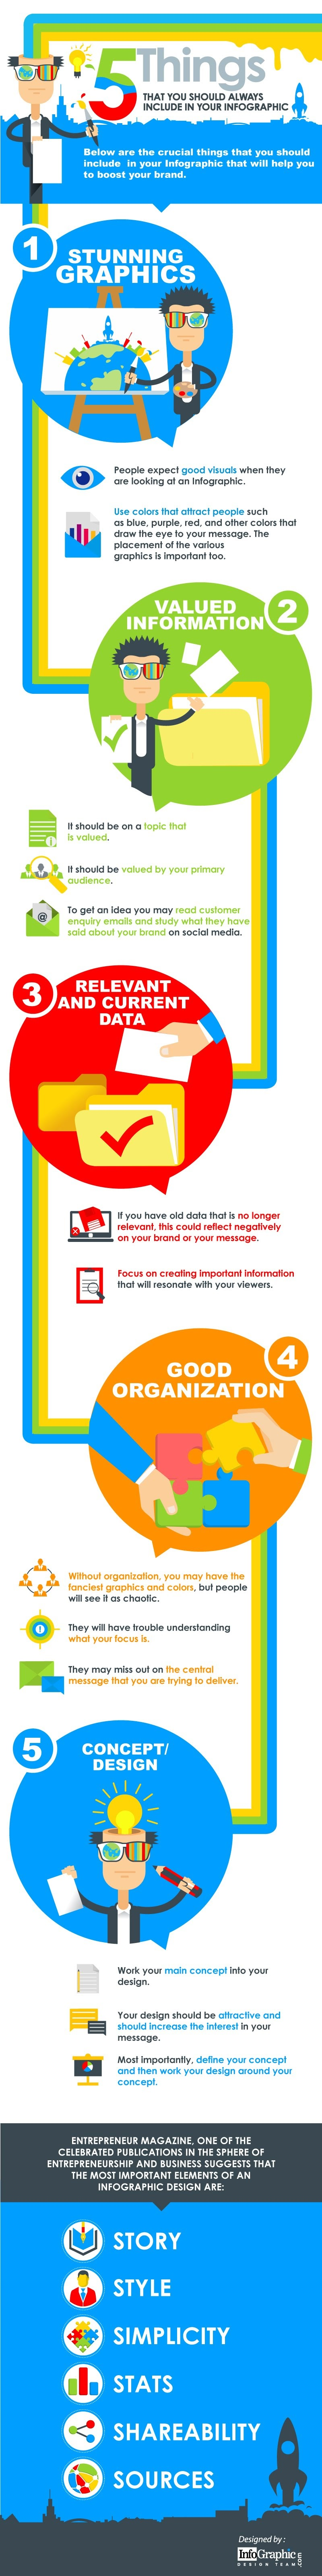 5 Things You Should Always Include in Your #Infographic